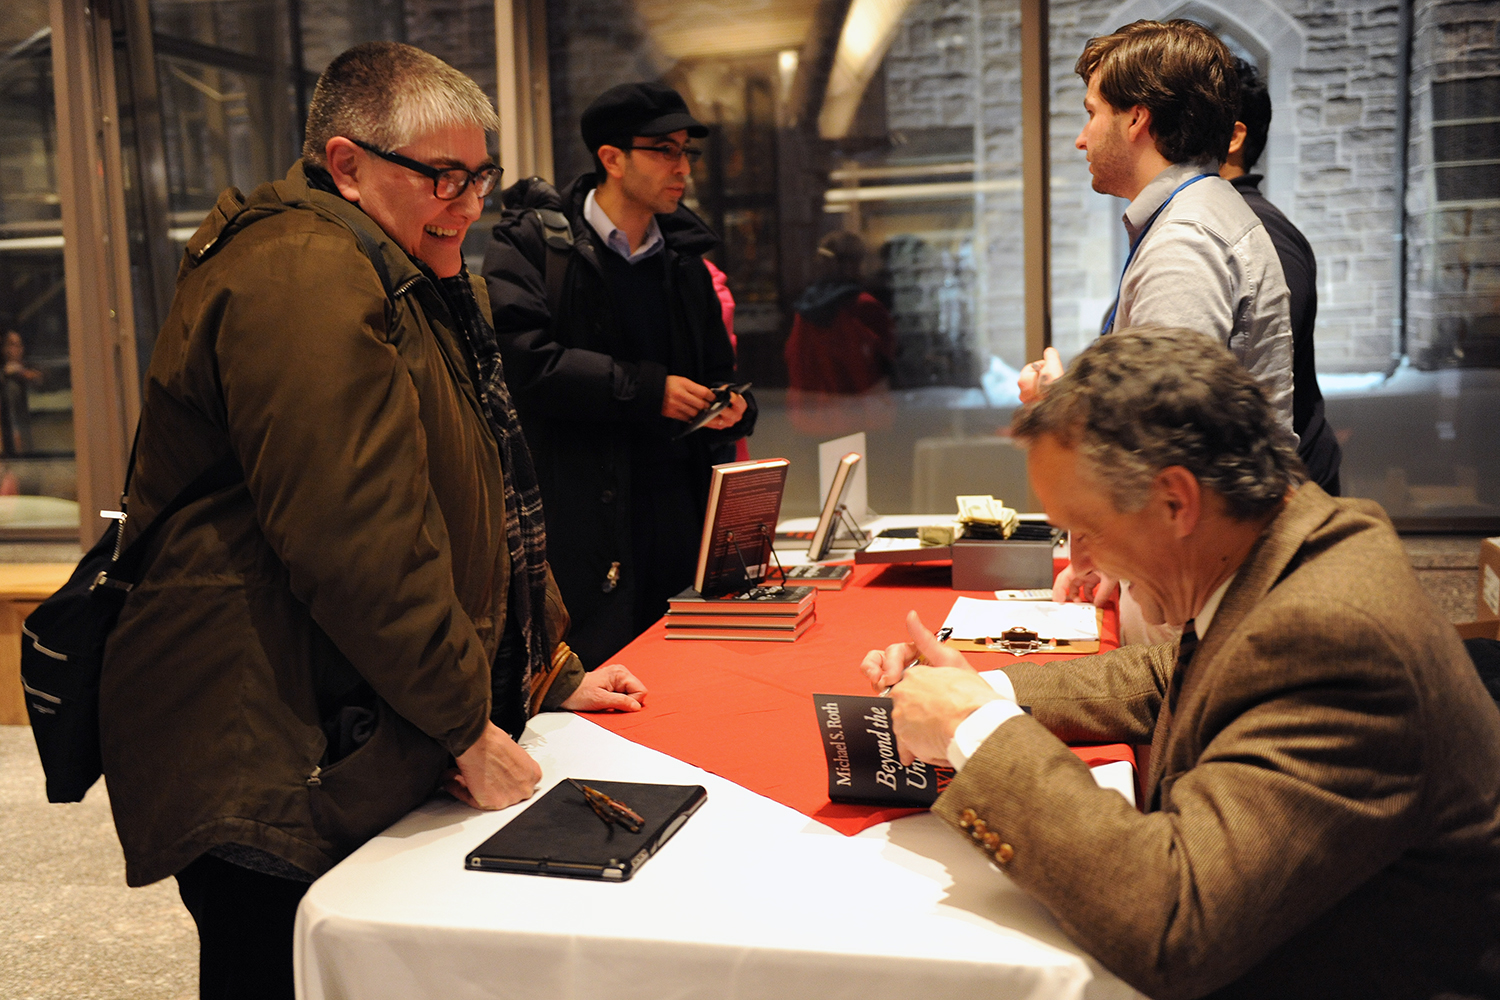 Roth signs his book <em>Beyond the University: Why a Liberal Arts Education Matters</em> for an attendee.  All royalties go to Wesleyan's financial aid.